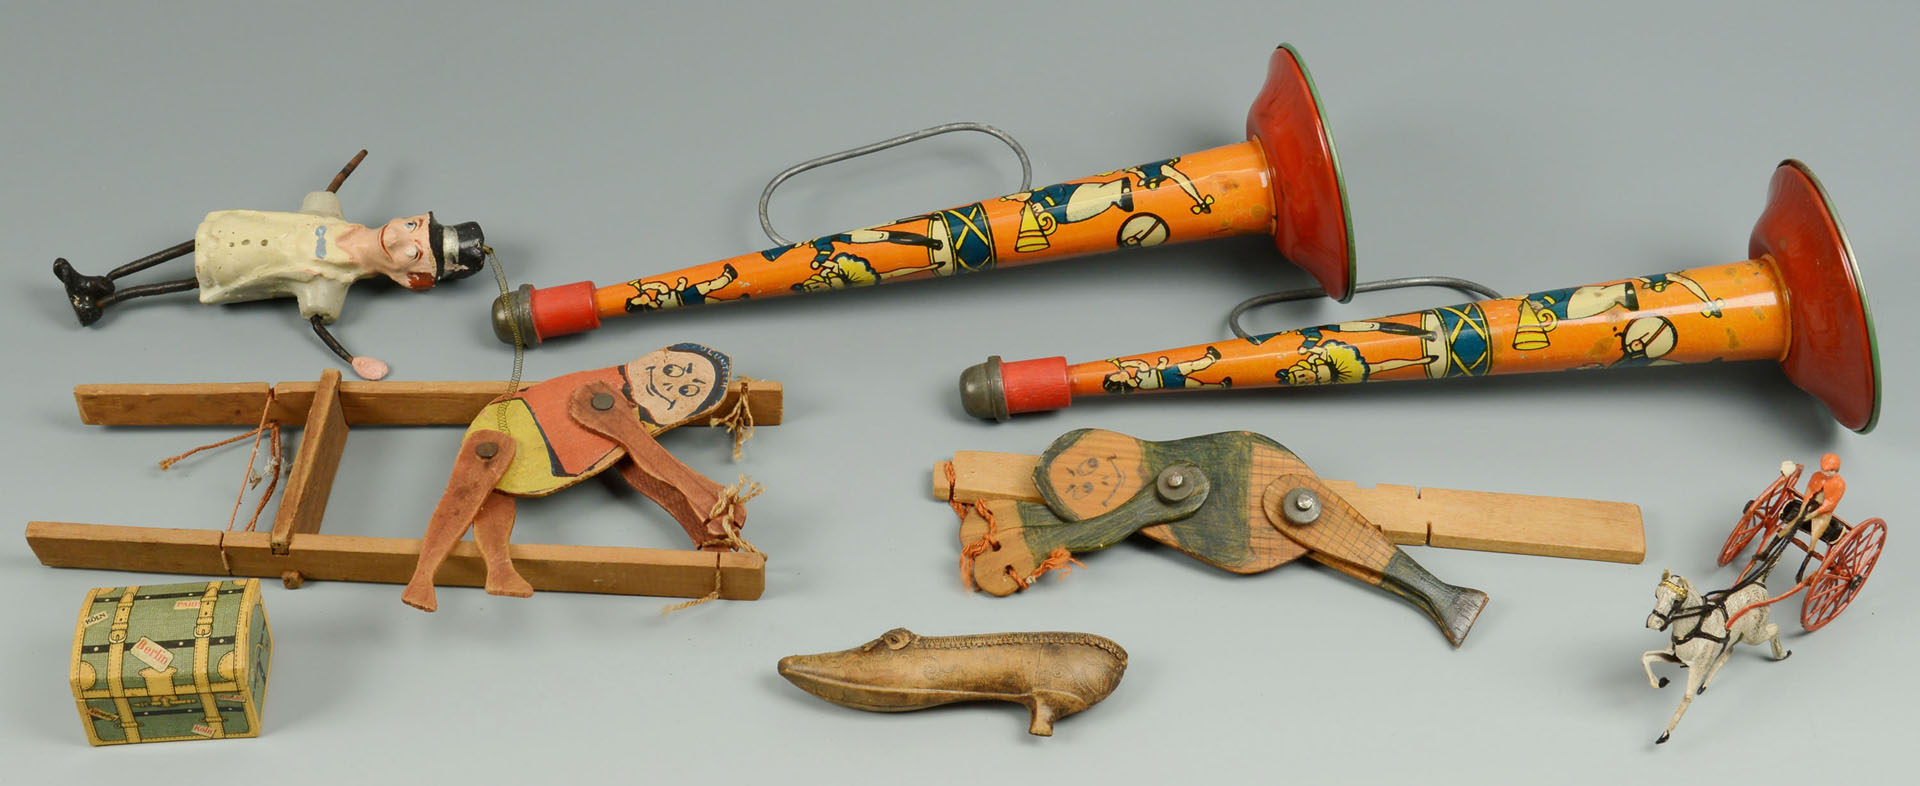 Lot 594: Group of Early to Mid 20th Century Toys